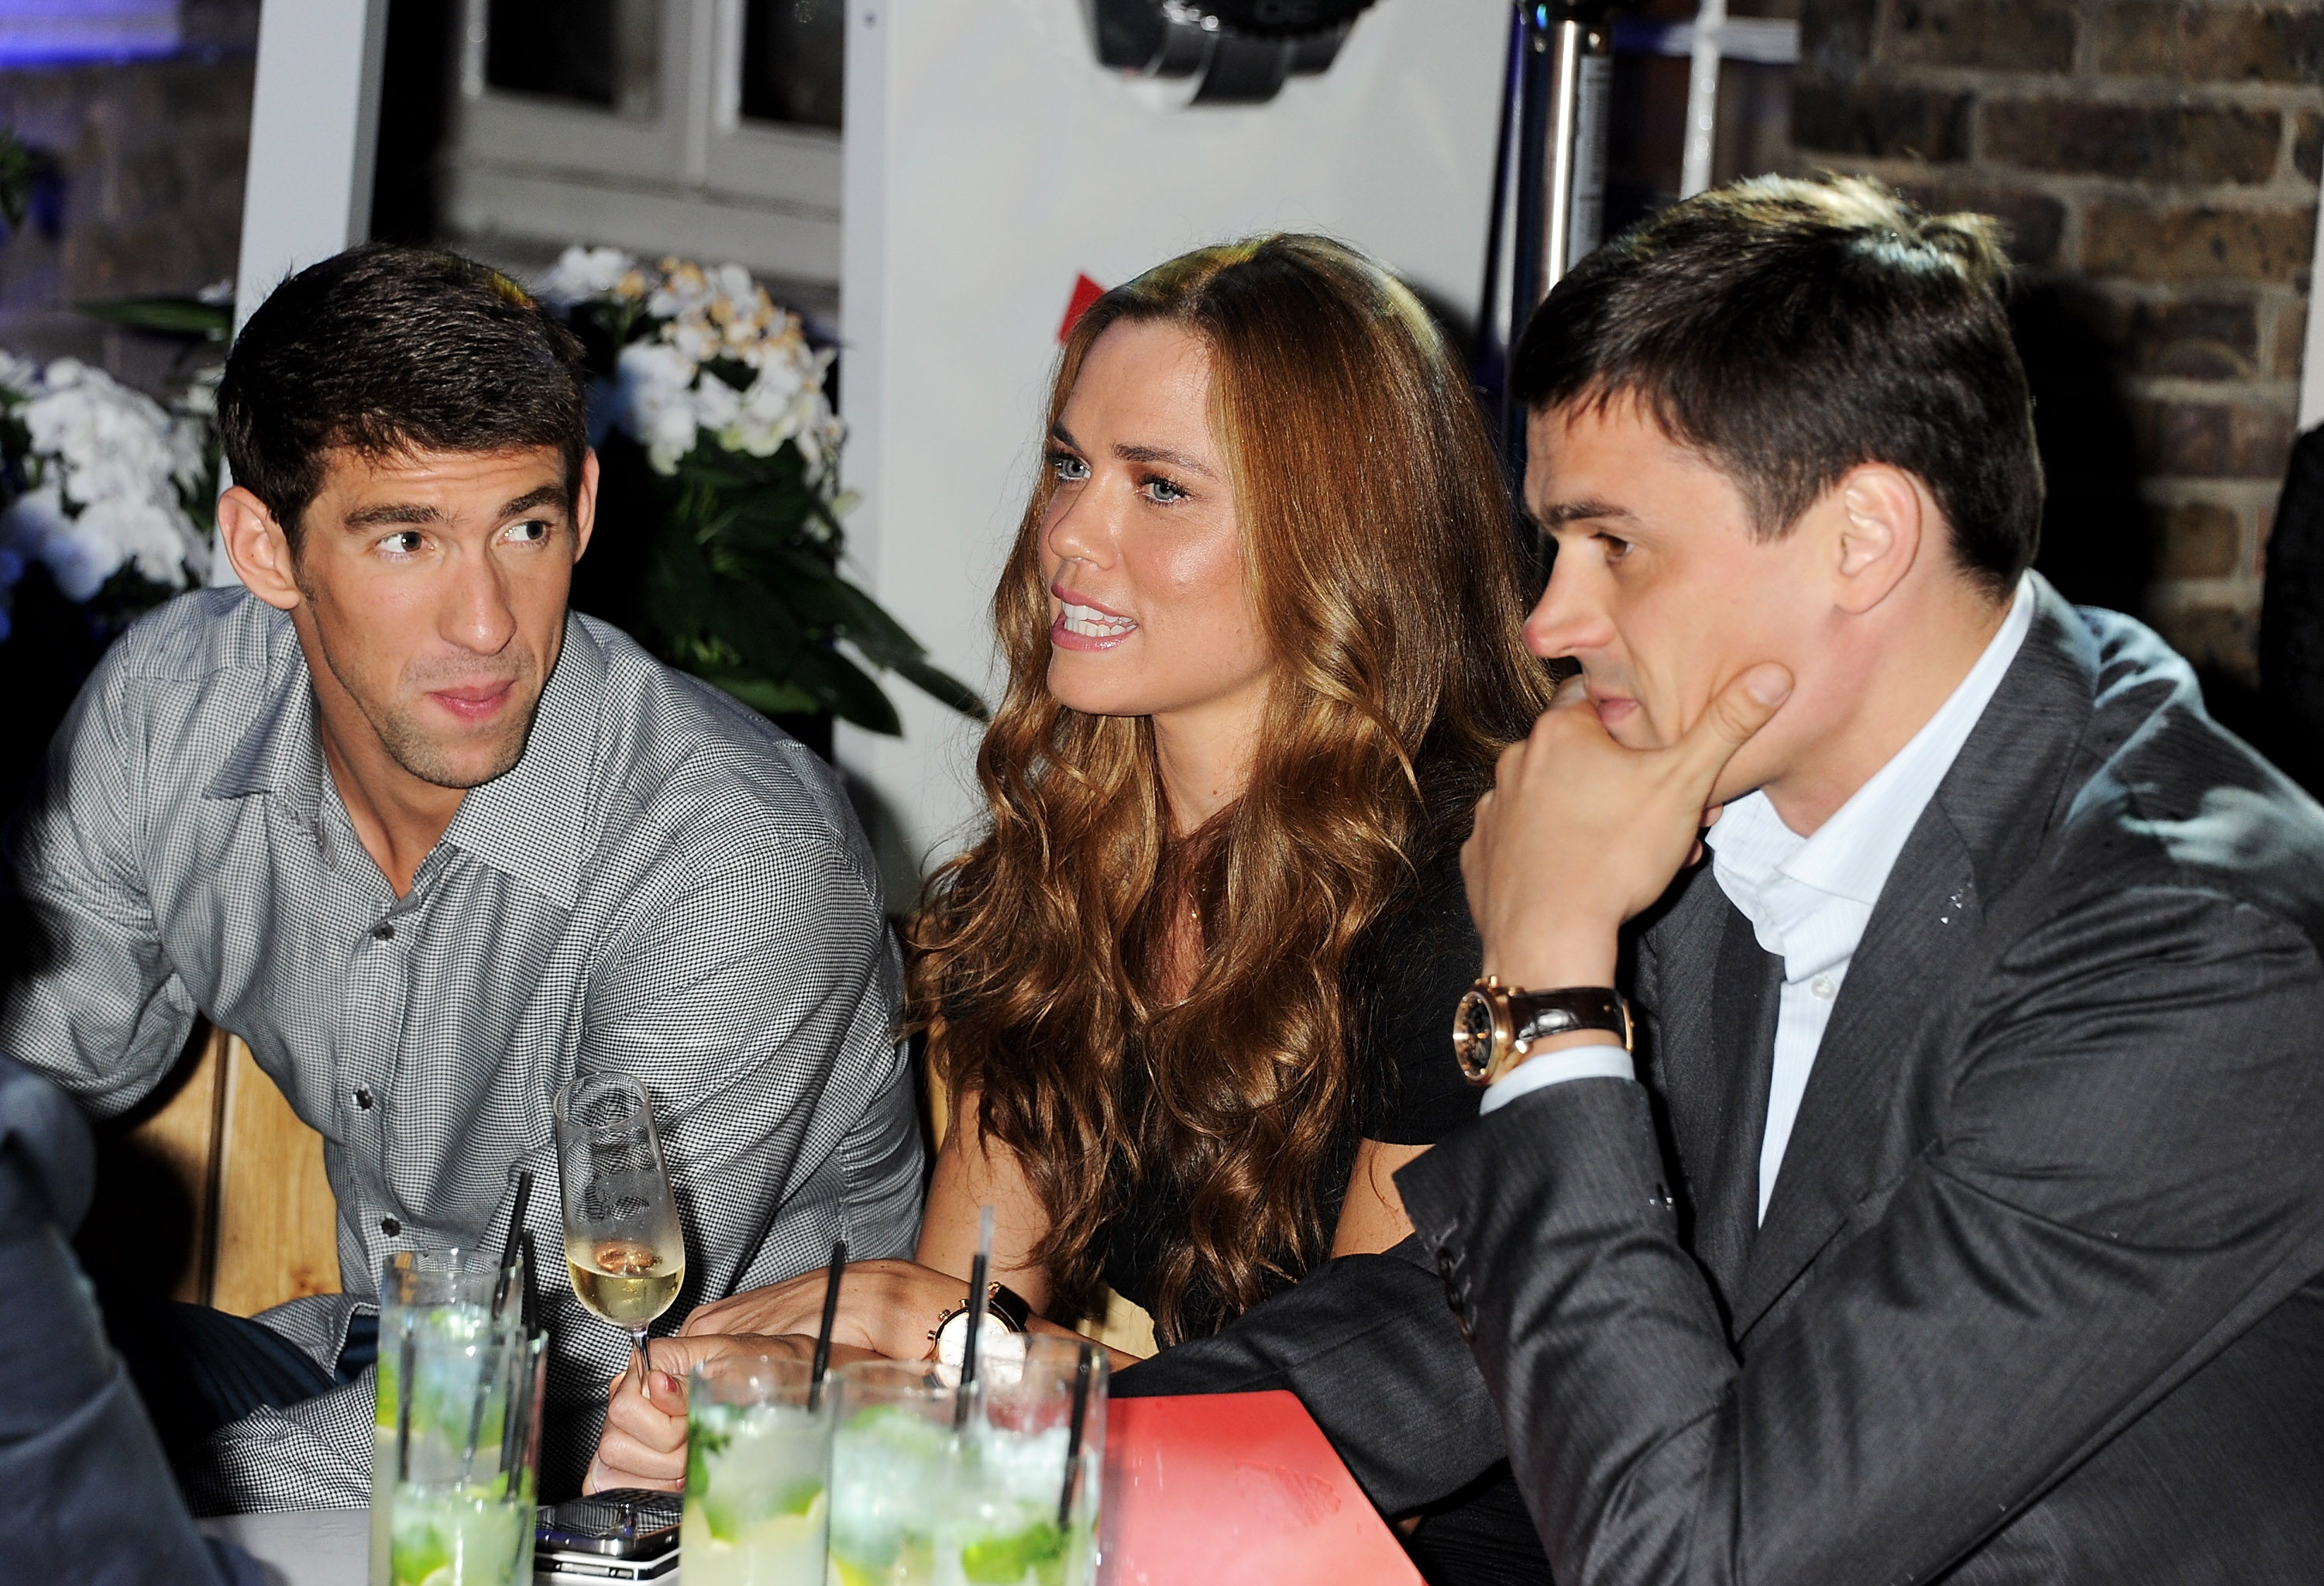 Michael Phelps relaxed with Natalie Coughlin and Alexander ...